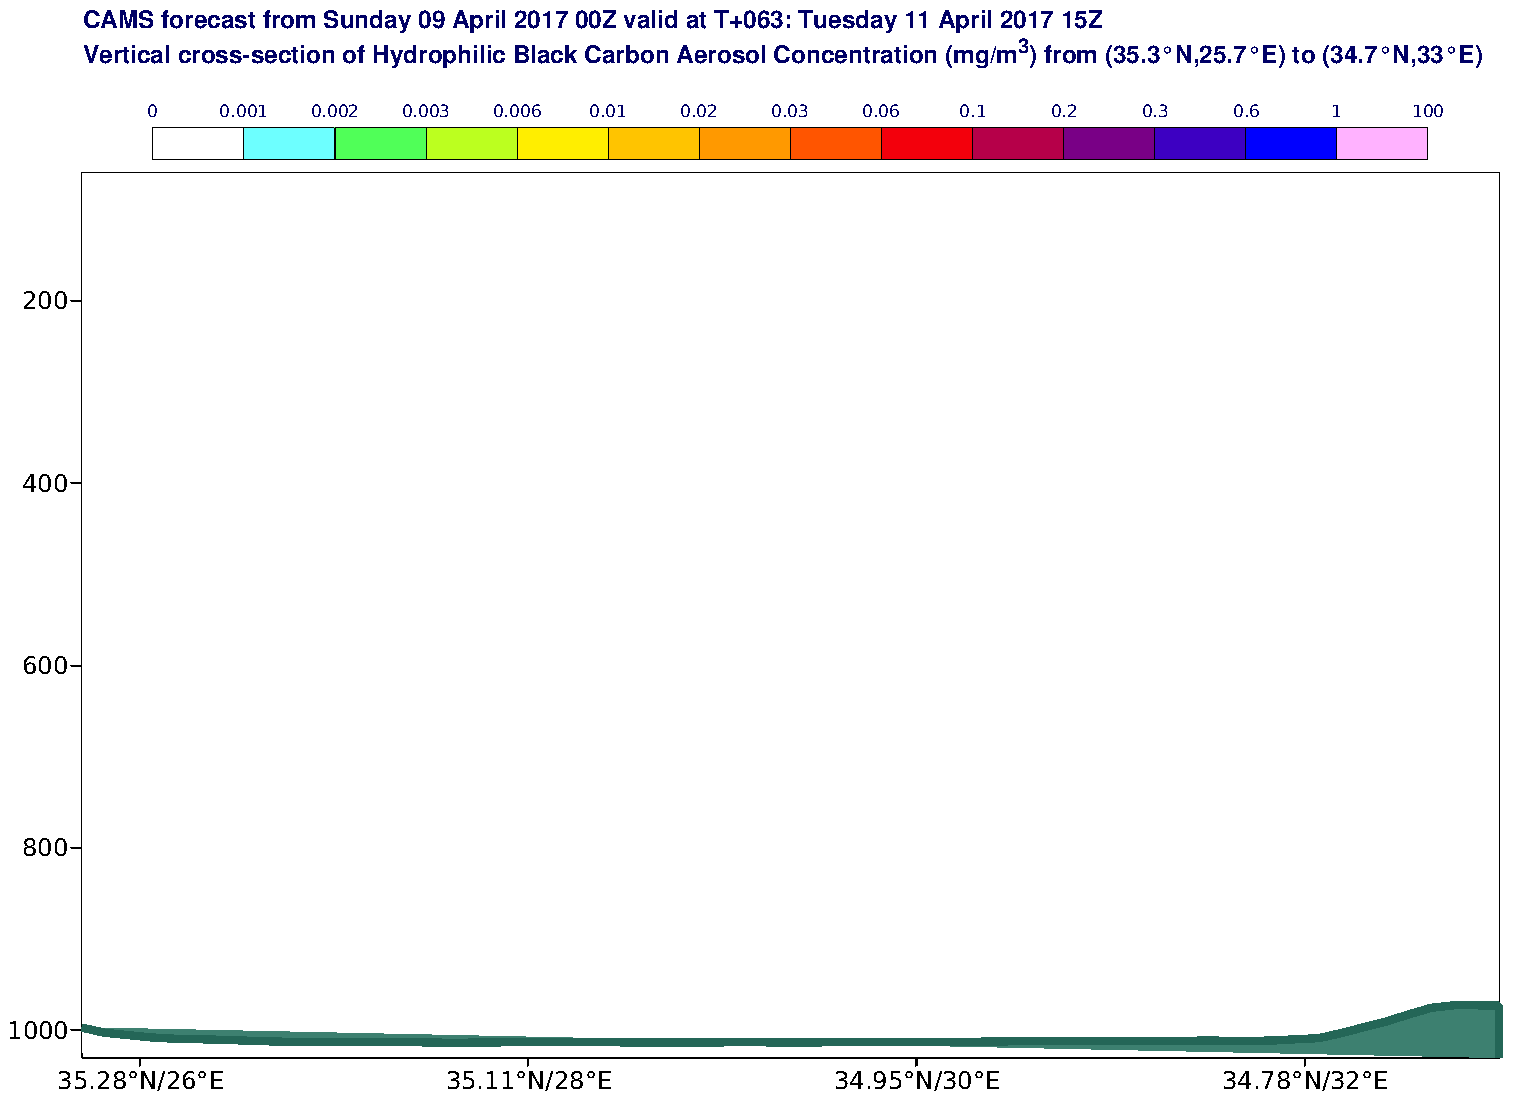 Vertical cross-section of Hydrophilic Black Carbon Aerosol Concentration (mg/m3) valid at T63 - 2017-04-11 15:00